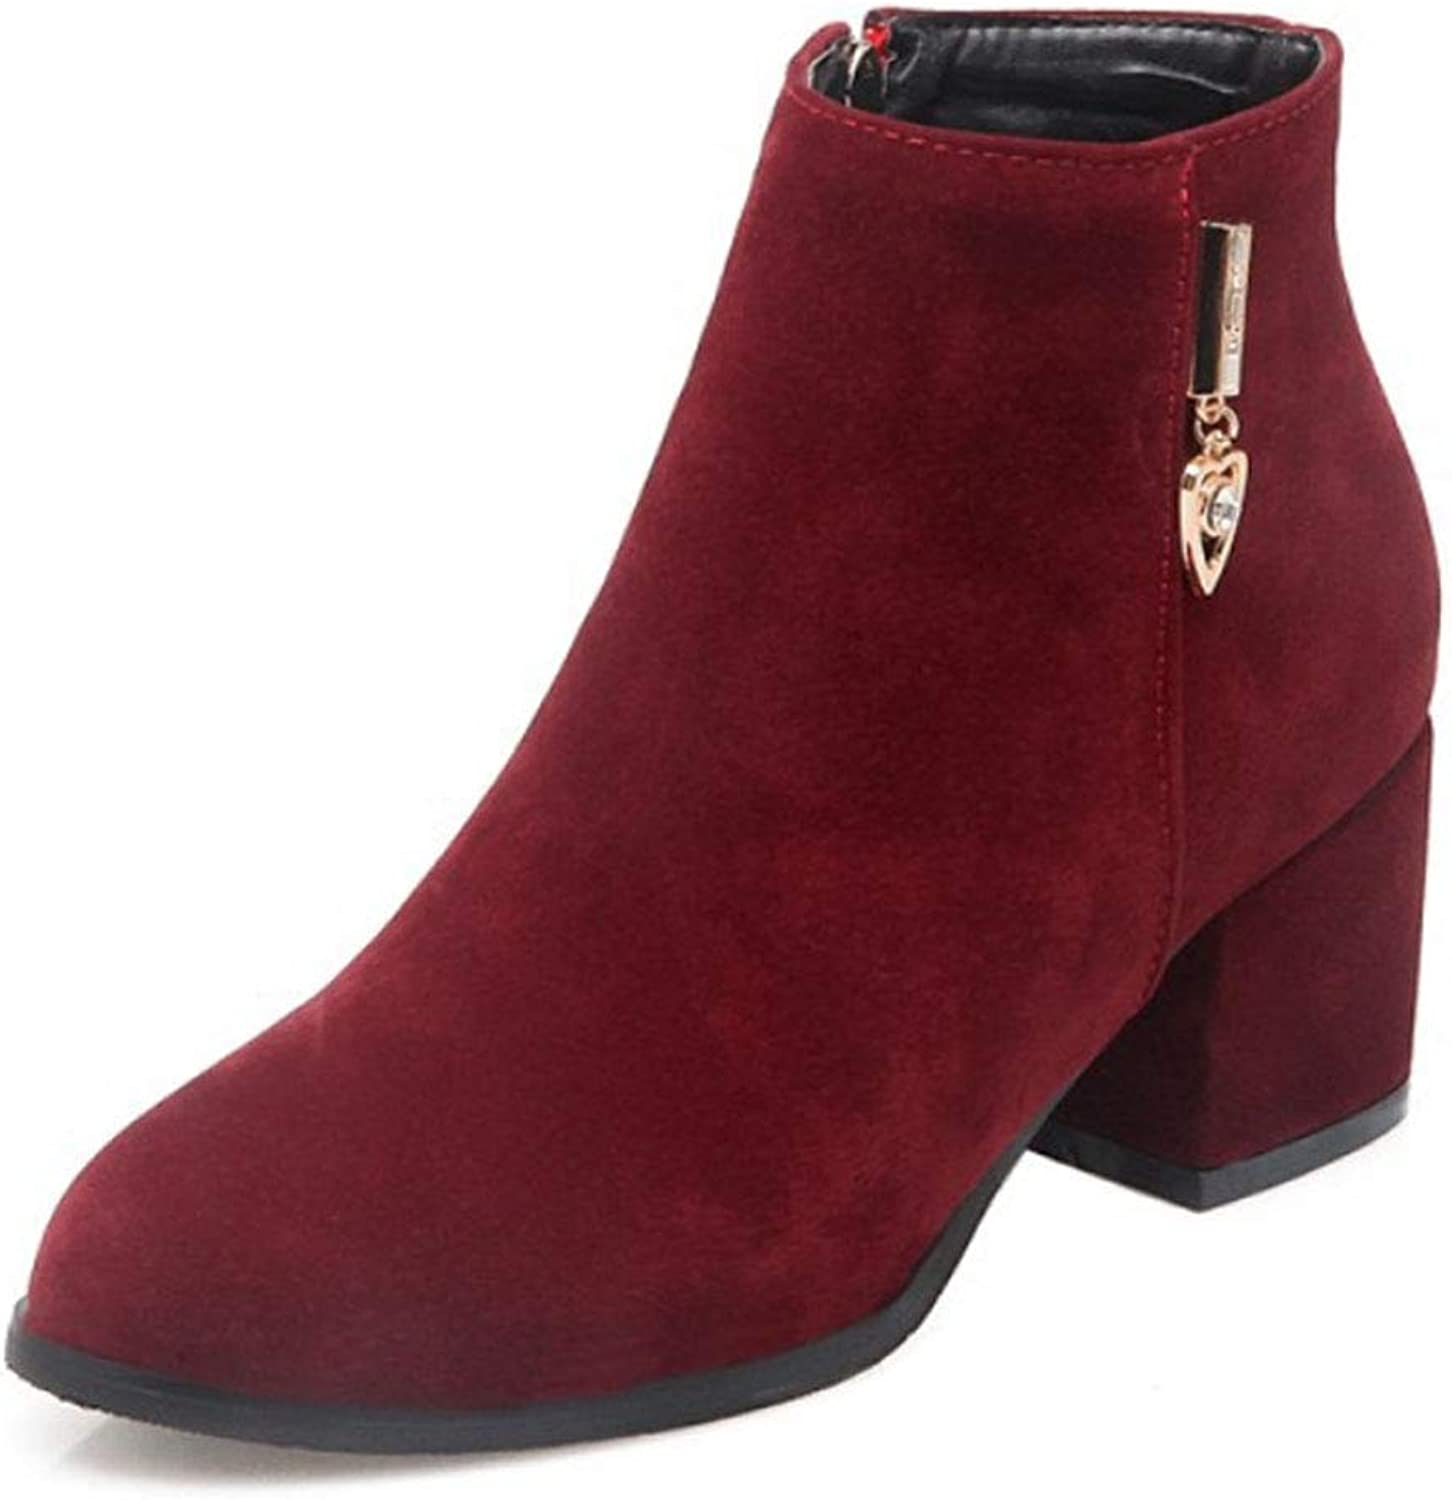 Women's Short Boots Suede Low Heel Thick with Round Head Single Boots Thickening Fleece Lined Side Zipper Metal Decorative Large Size Booties